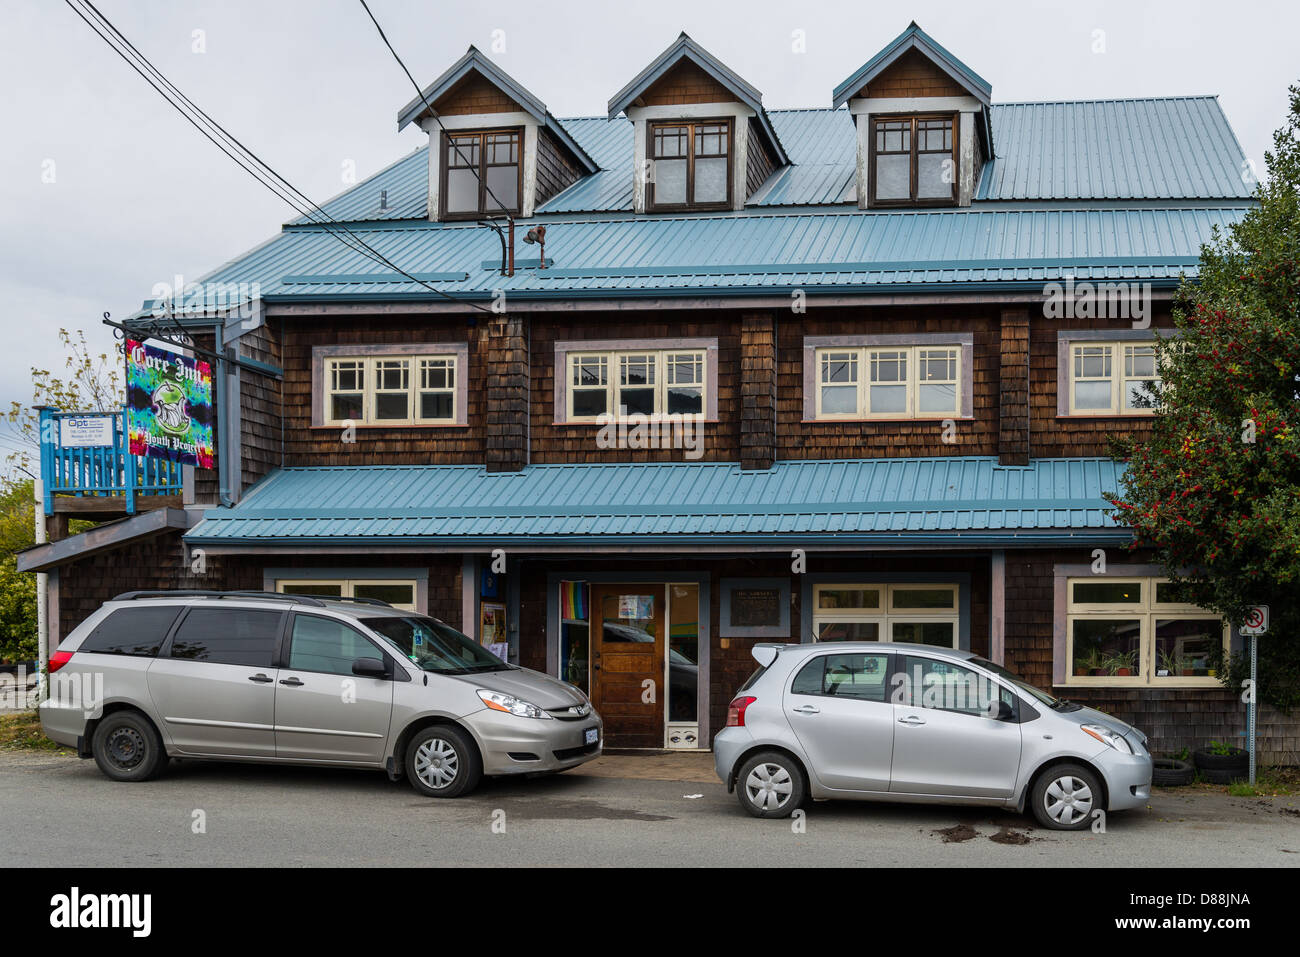 Core Inn, Youth Project Society, Salt Spring Island, British Columbia, Canada - Stock Image